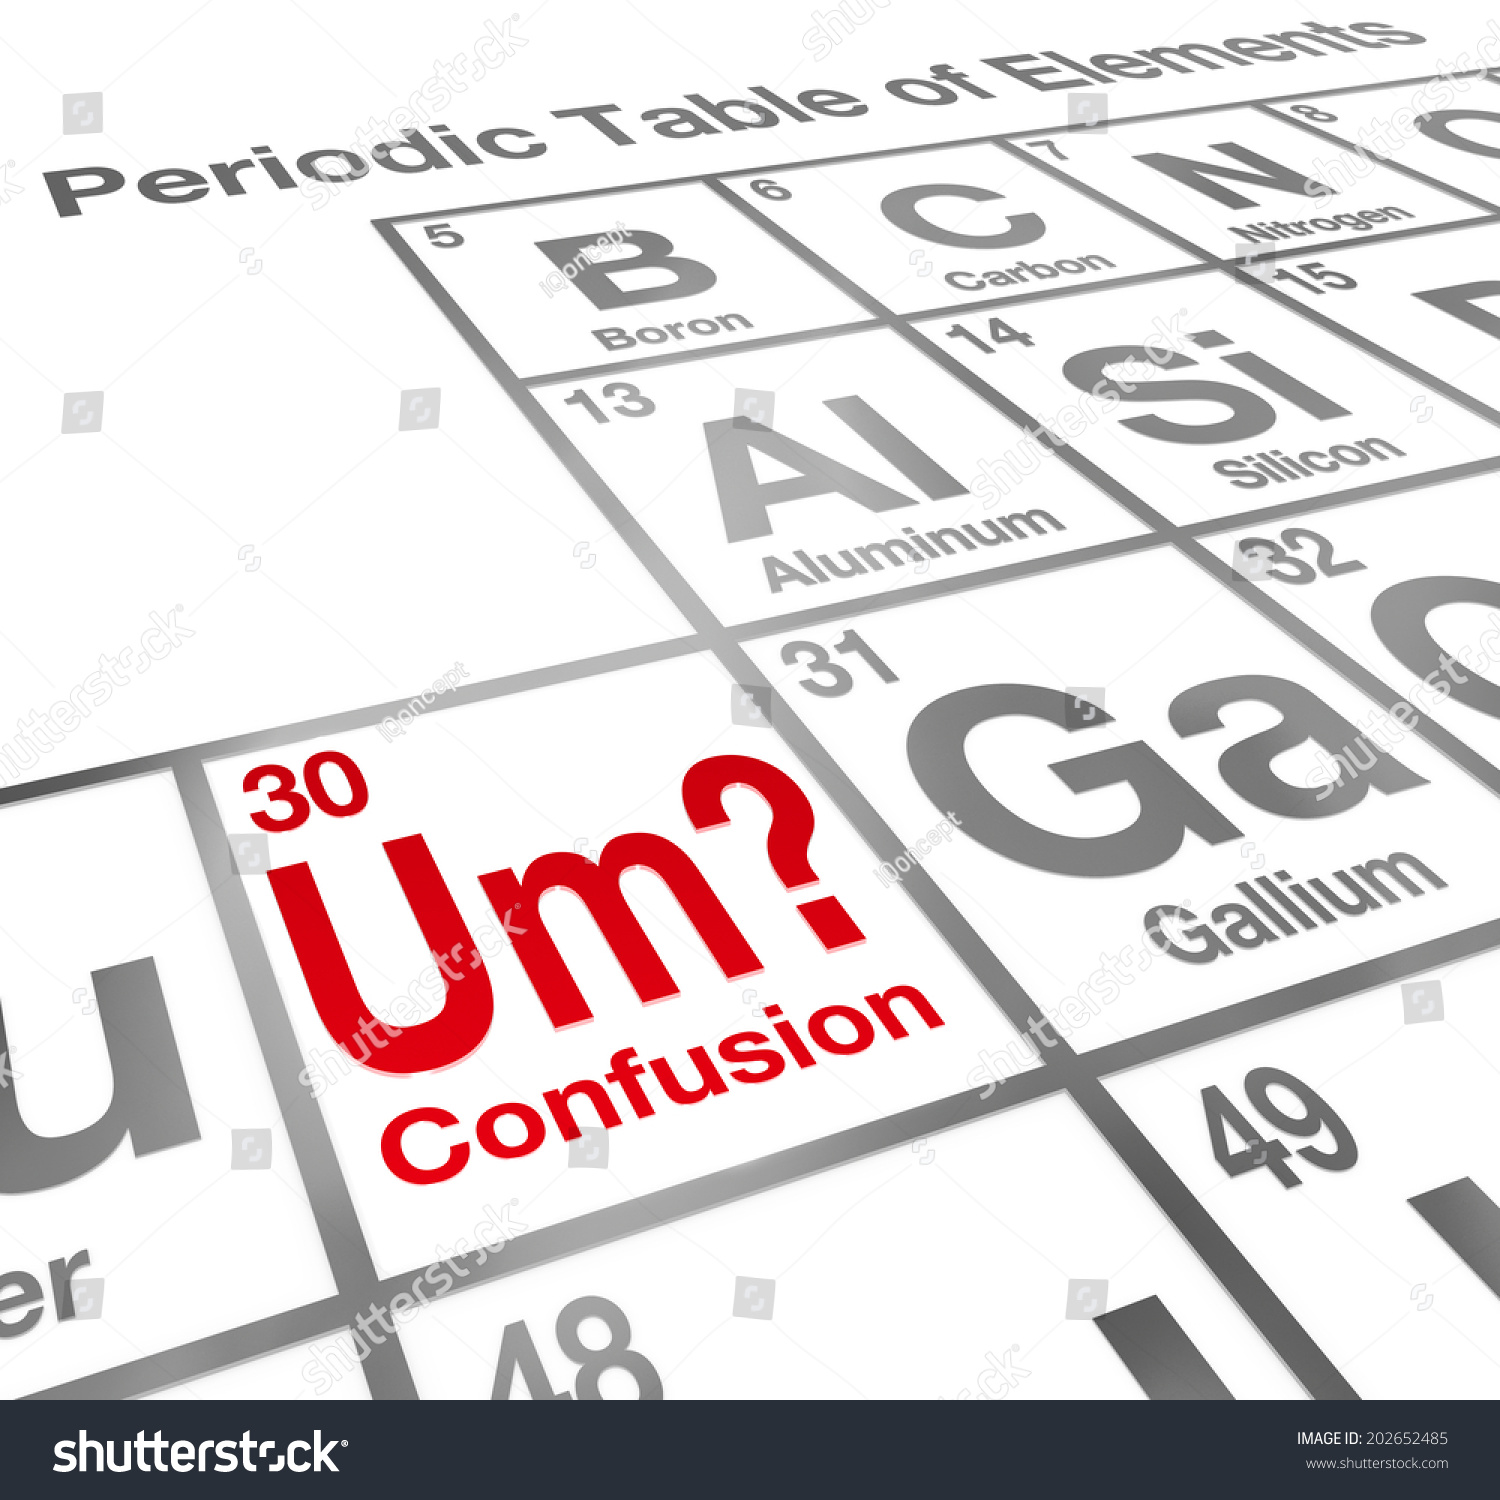 Co2 periodic table choice image periodic table images um element confusion words on periodic stock illustration um the element of confusion words on a gamestrikefo Gallery